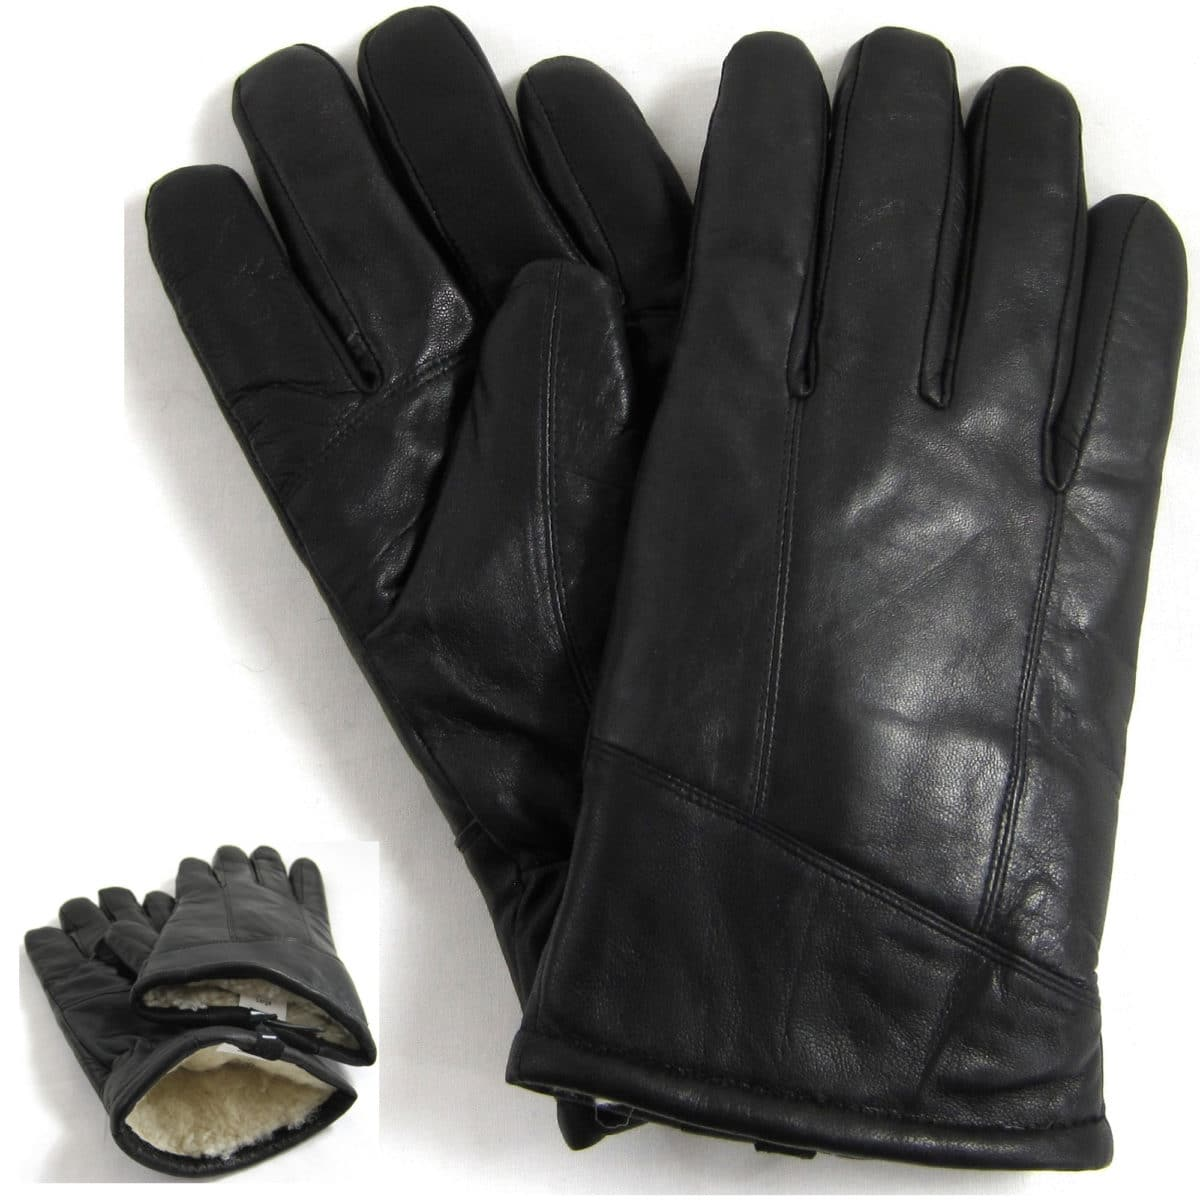 Leather Sheepskin Gloves - Black